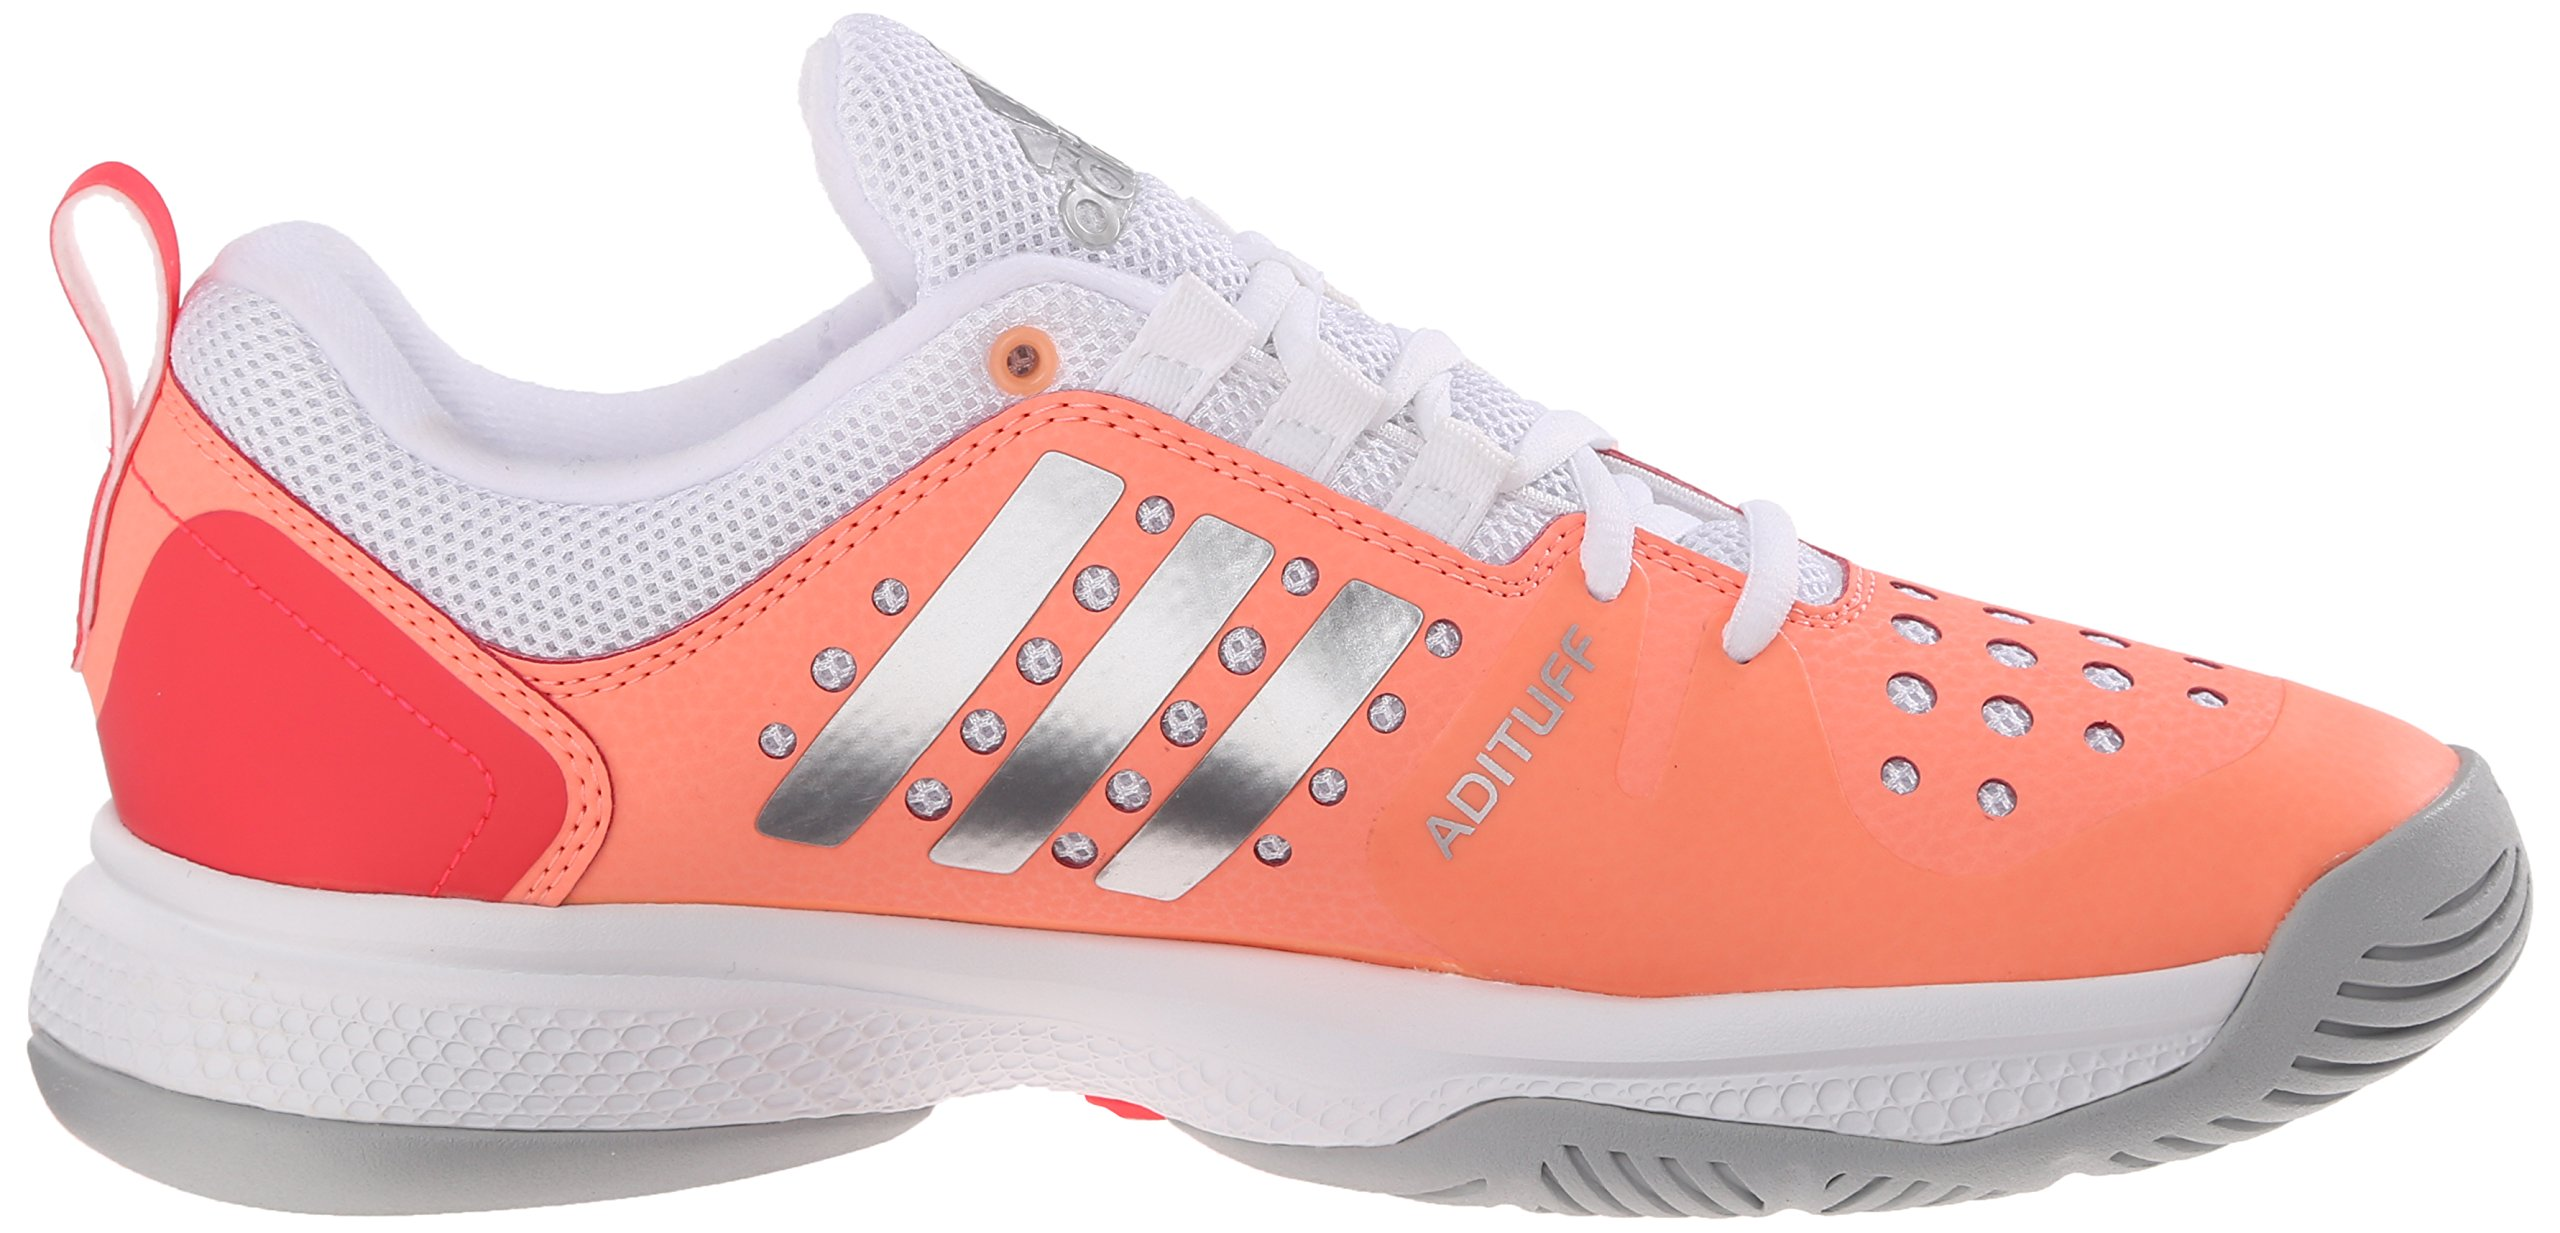 adidas Performance Women's Barricade Classic Bounce W Training Footwear,Sun Glow Yellow/Metallic Silver/Shock Red,9.5 M US by adidas (Image #7)